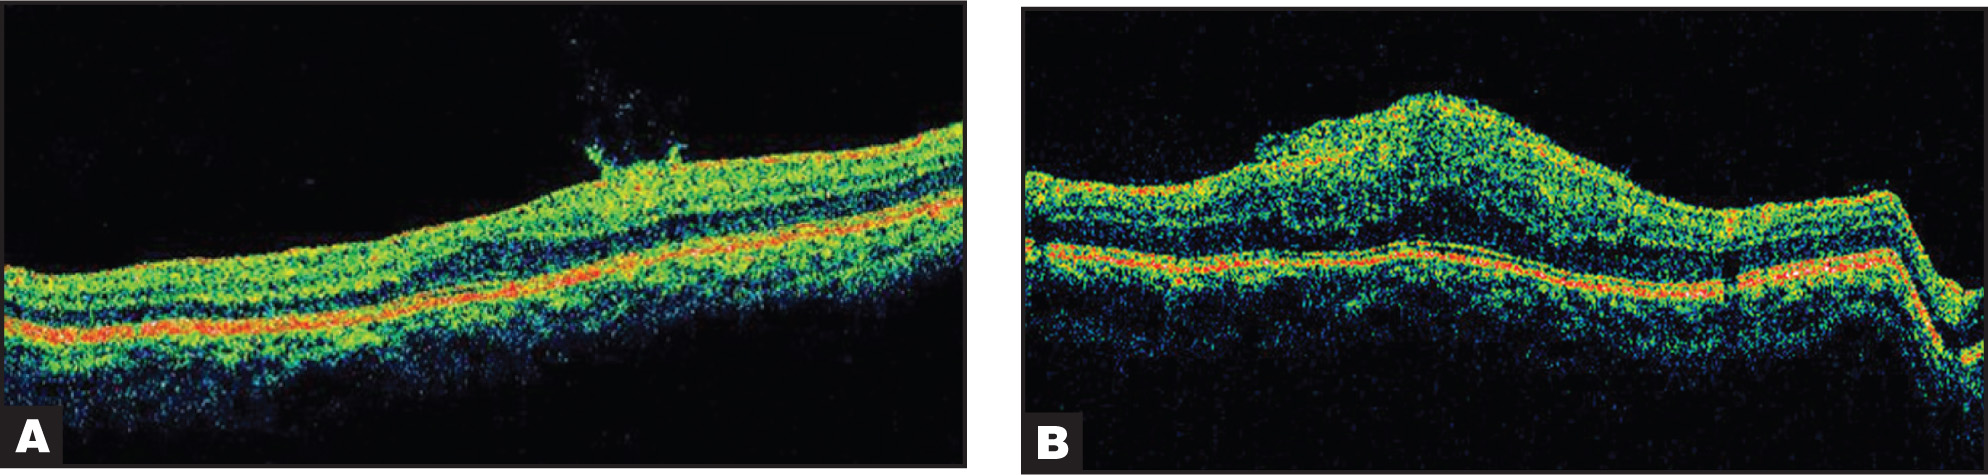 Optical Coherence Tomography (OCT) of Case 1. (A) Right Eye. Thick Epiretinal Membrane Laid Across the Surface of the Macula with Curled Edges Stretching into the Vitreoretinal Interface. Note Resultant Foveal Contour Distortion and Mild Retinal Thickening. (B) Left Eye. Thicker Epiretinal Membrane with Similar Characteristics and Marked Retinal Thickening with a Central Macular Thickness of 512 Microns.